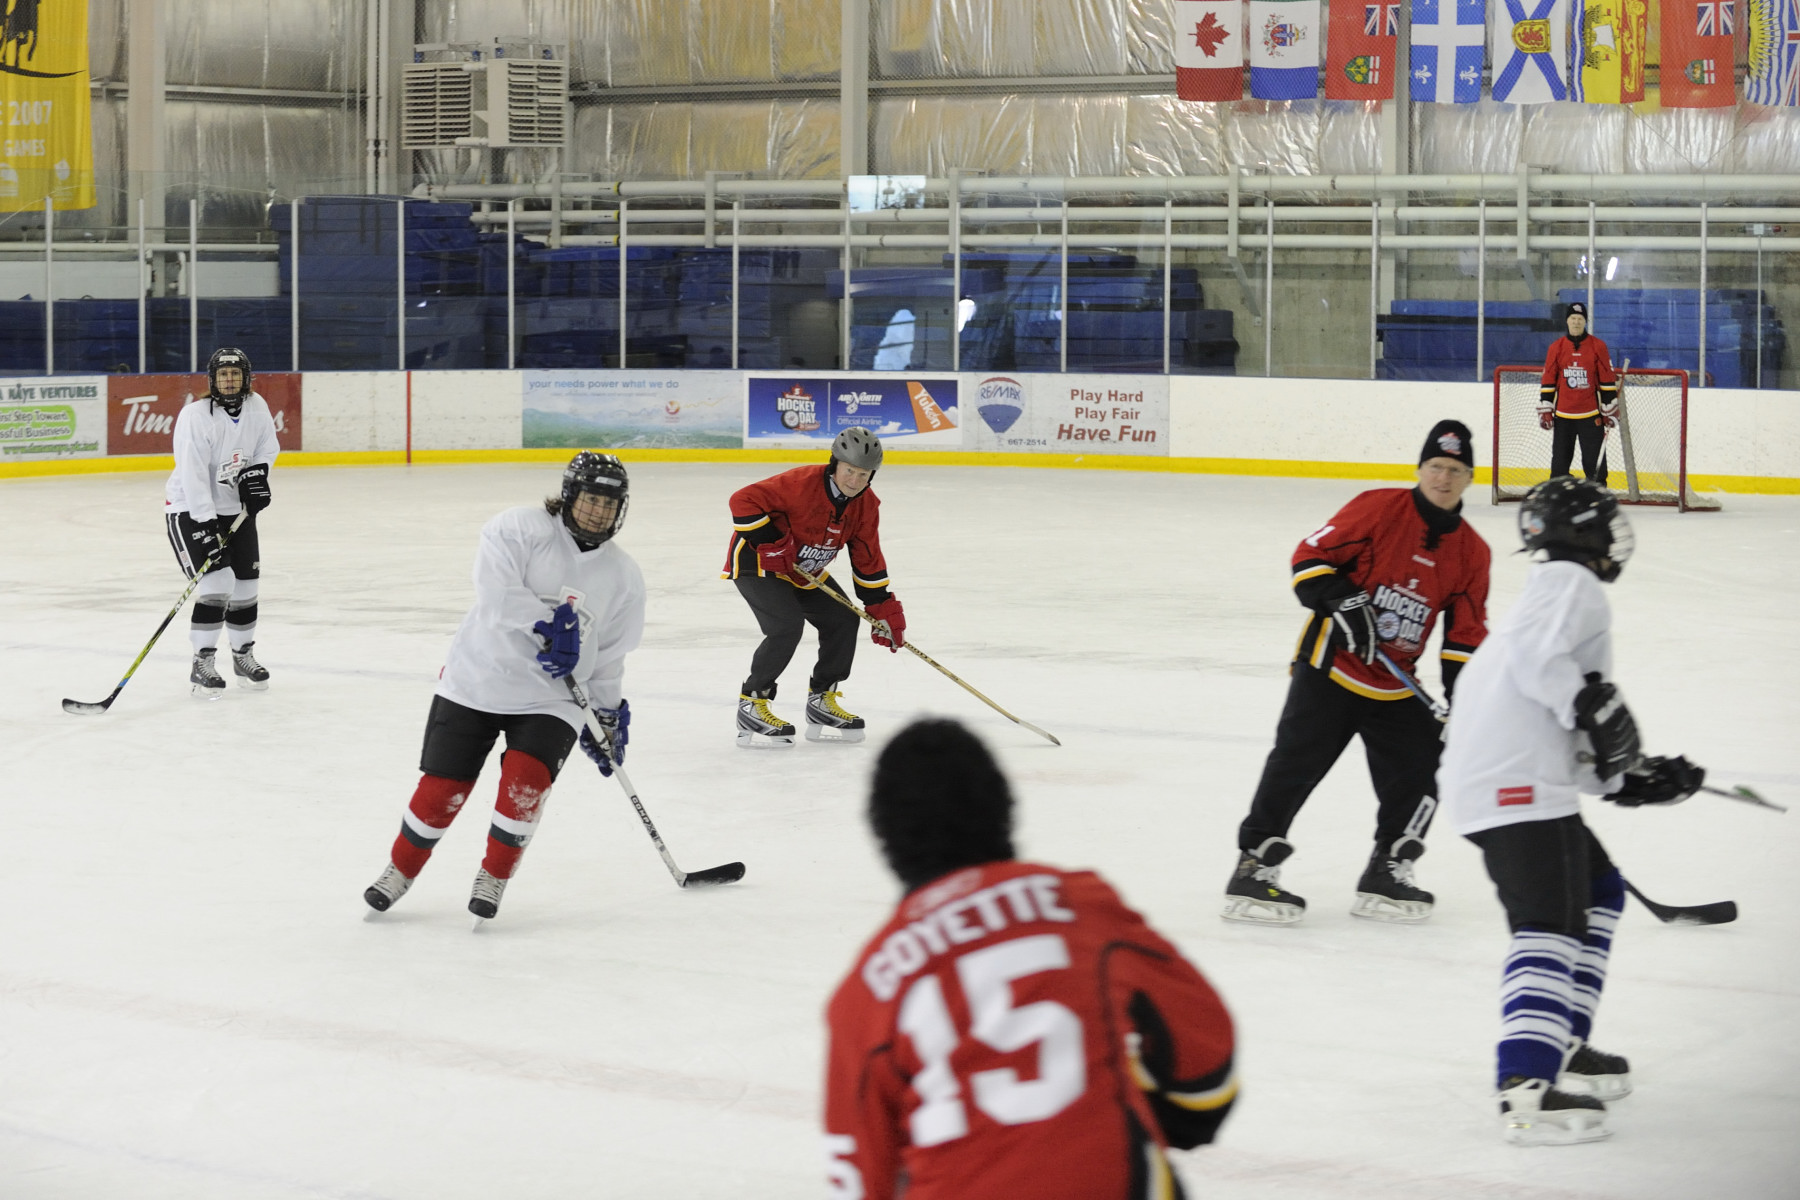 The clinic was held at the Canada Games Centre in Whitehorse.